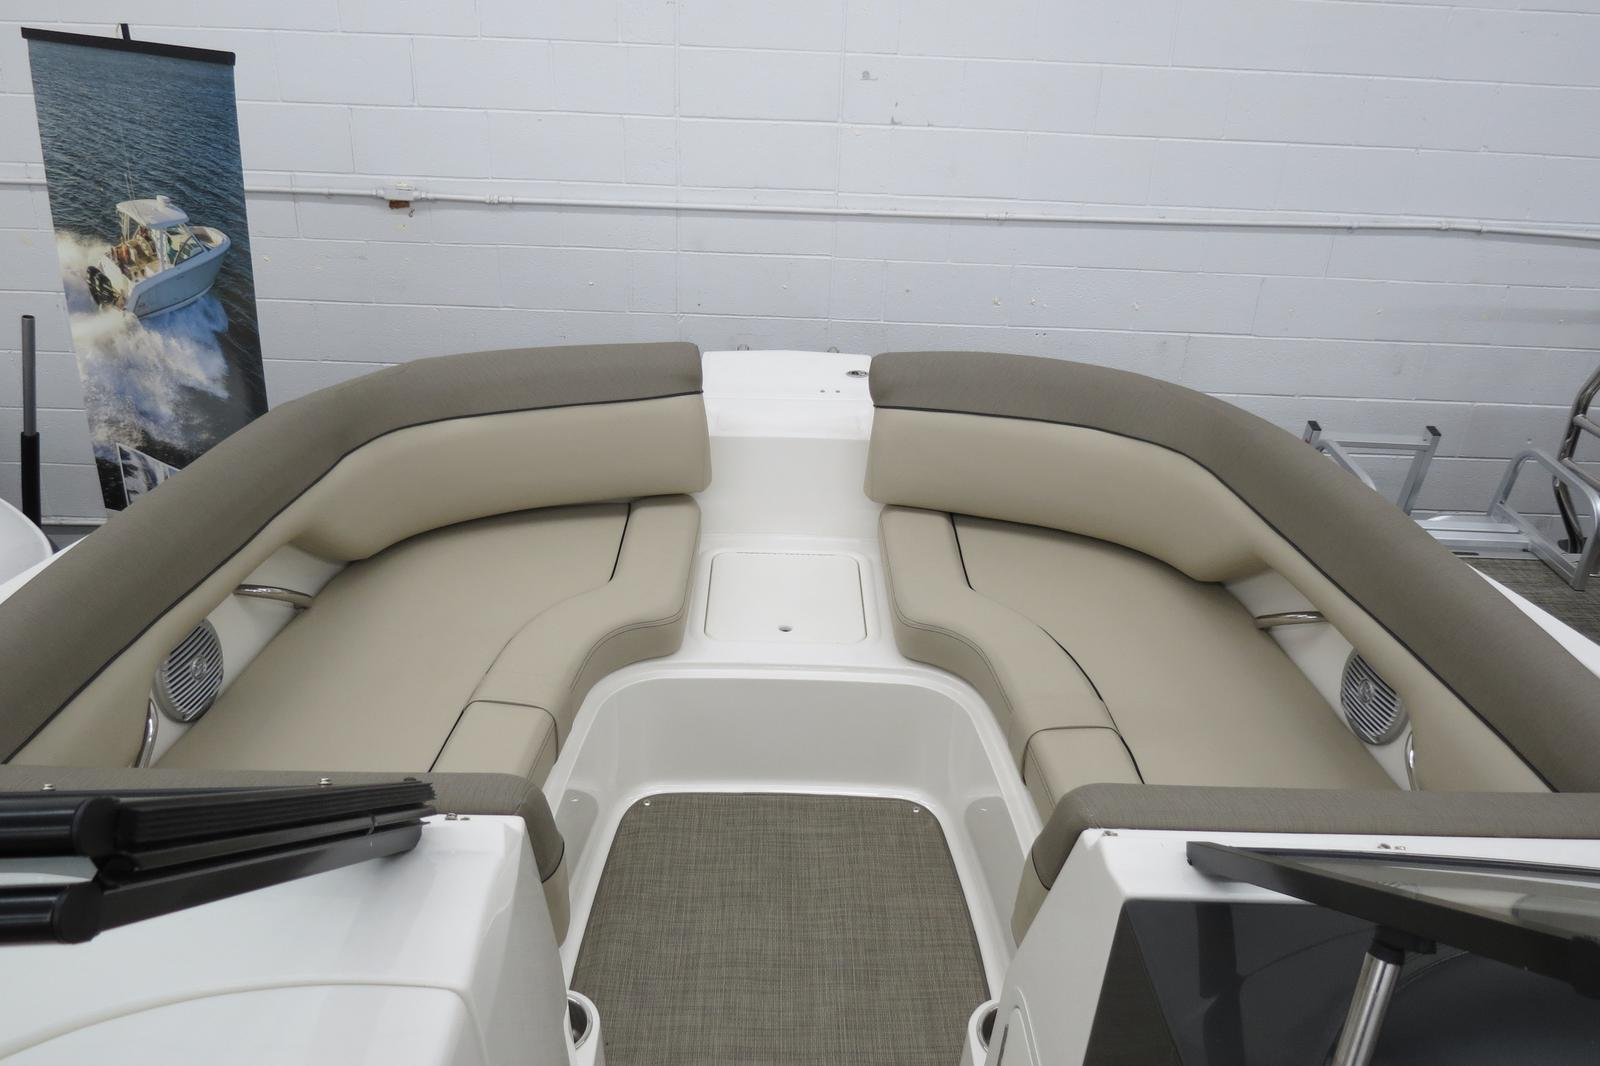 2019 Bayliner boat for sale, model of the boat is 215 Deck Boat & Image # 5 of 6